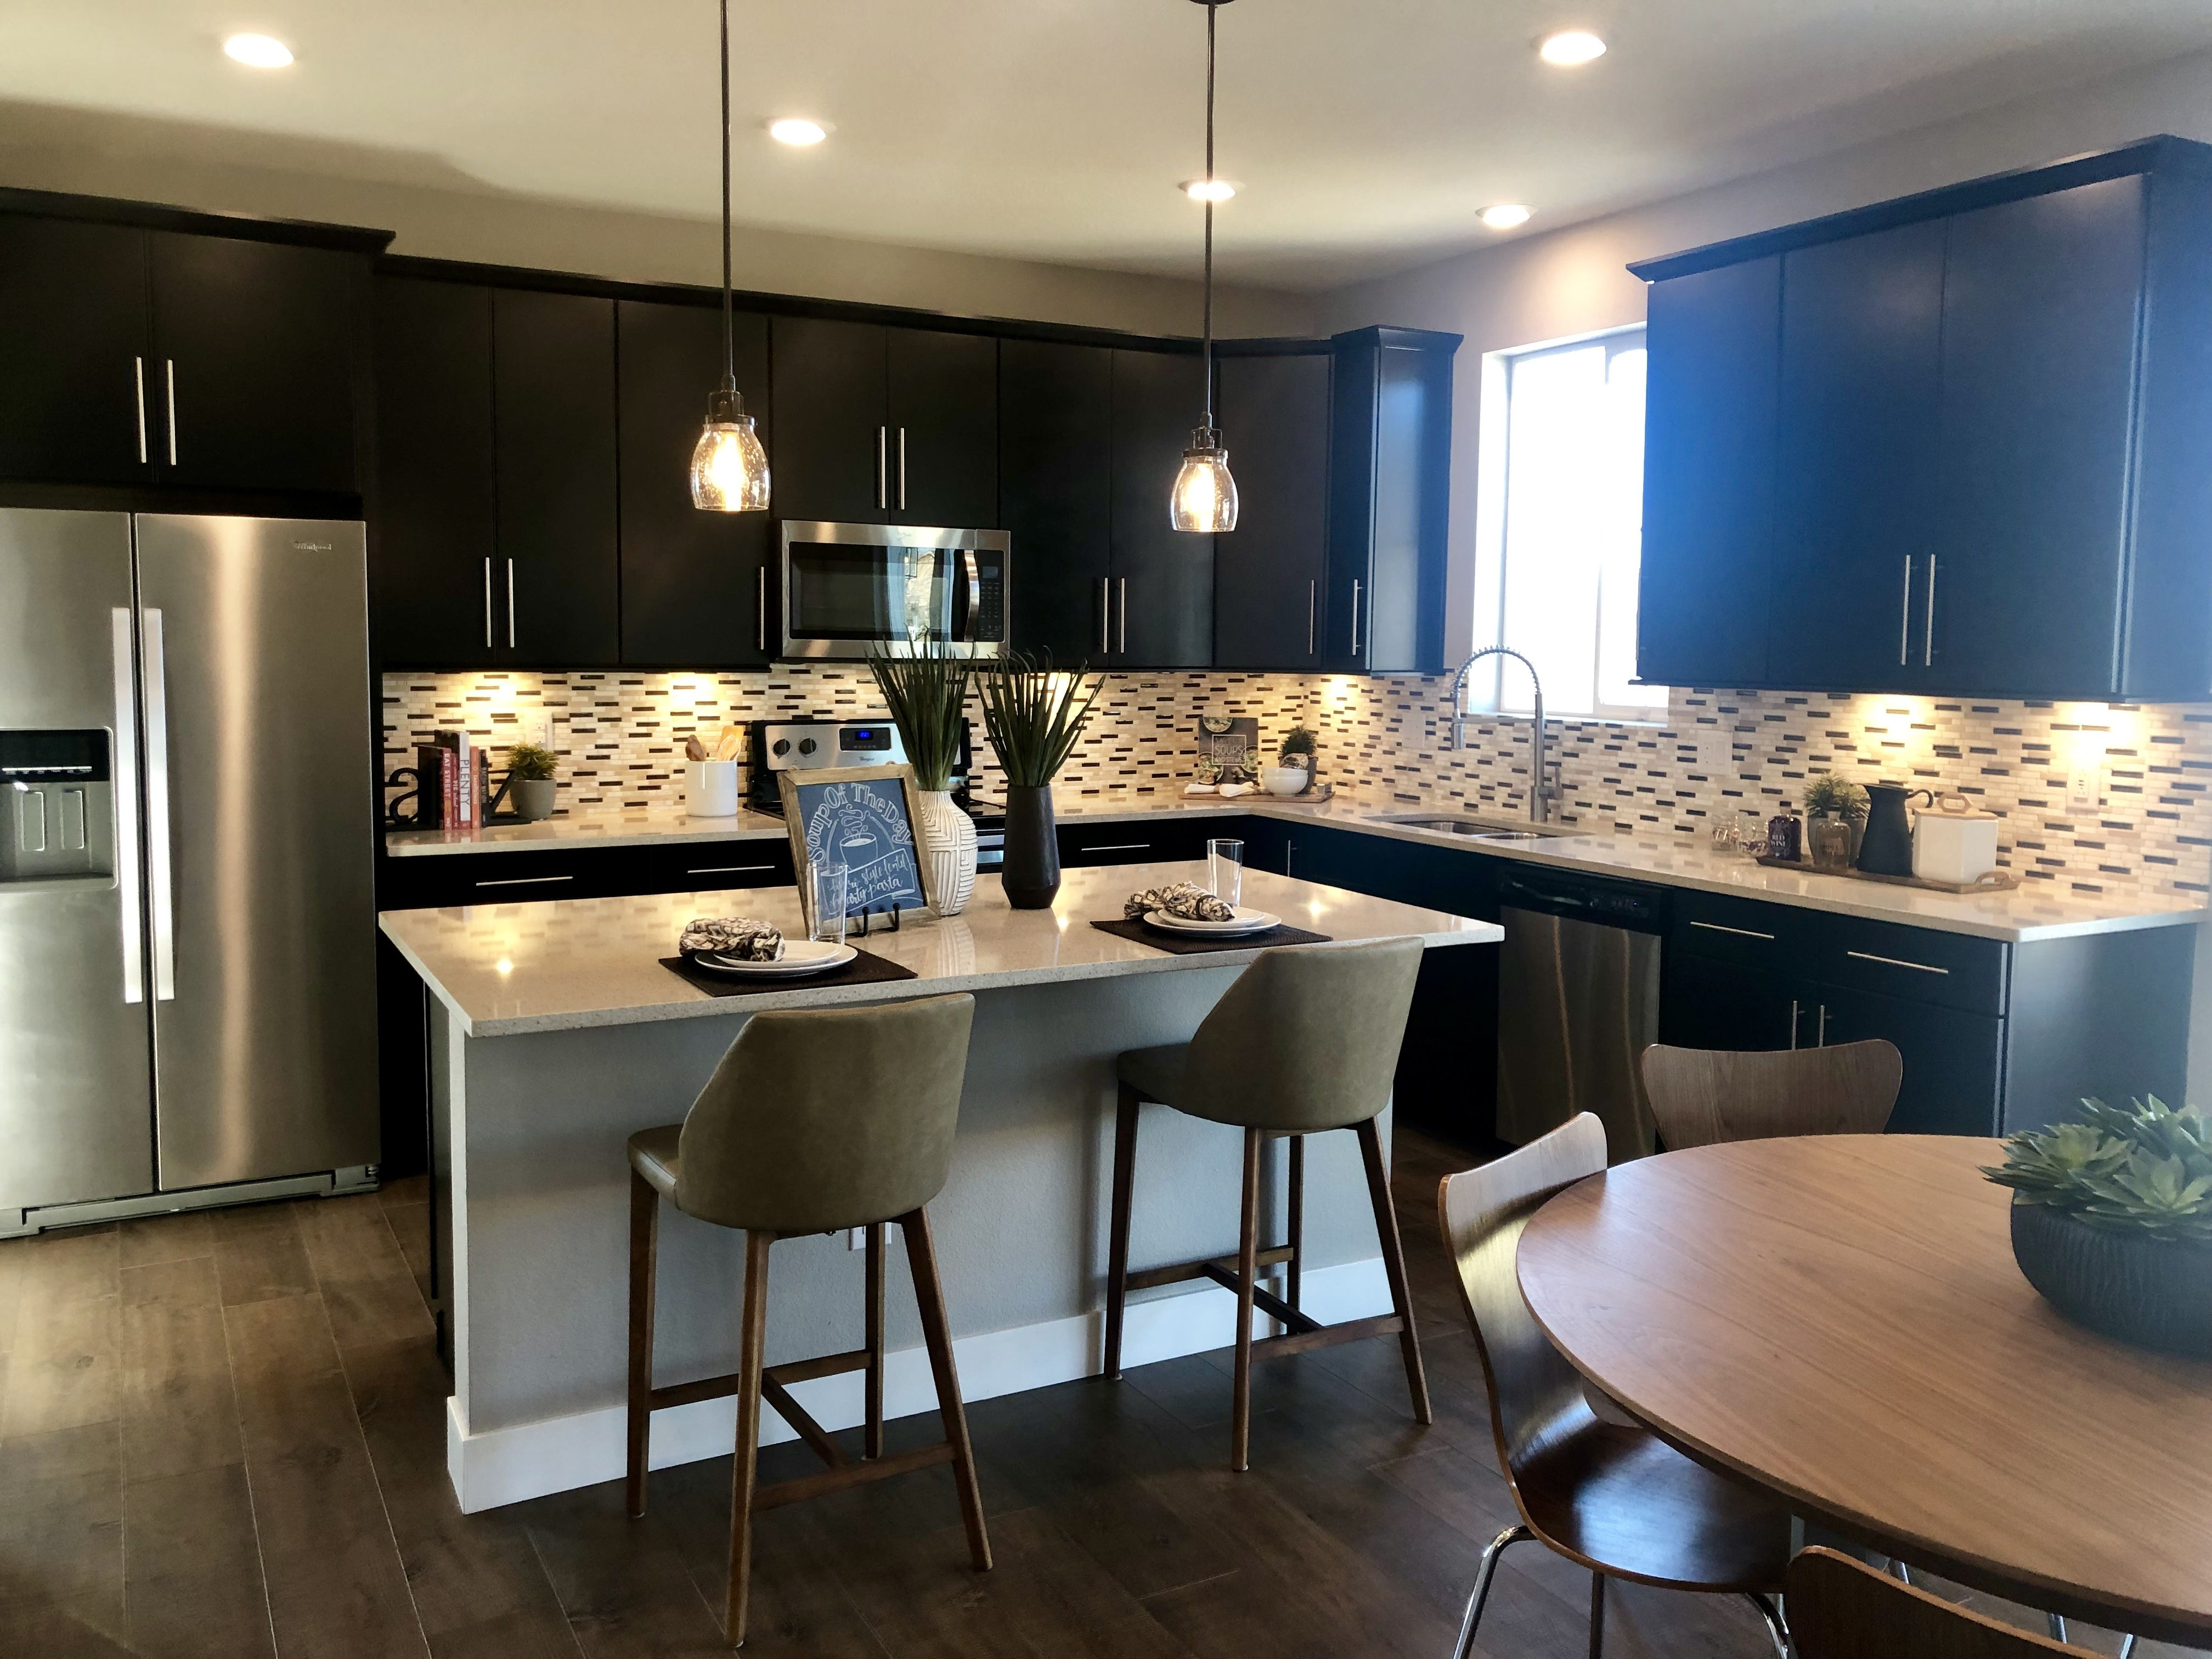 The Loveland Model By Kb Home Kb Homes Castle Rock Colorado New Homes